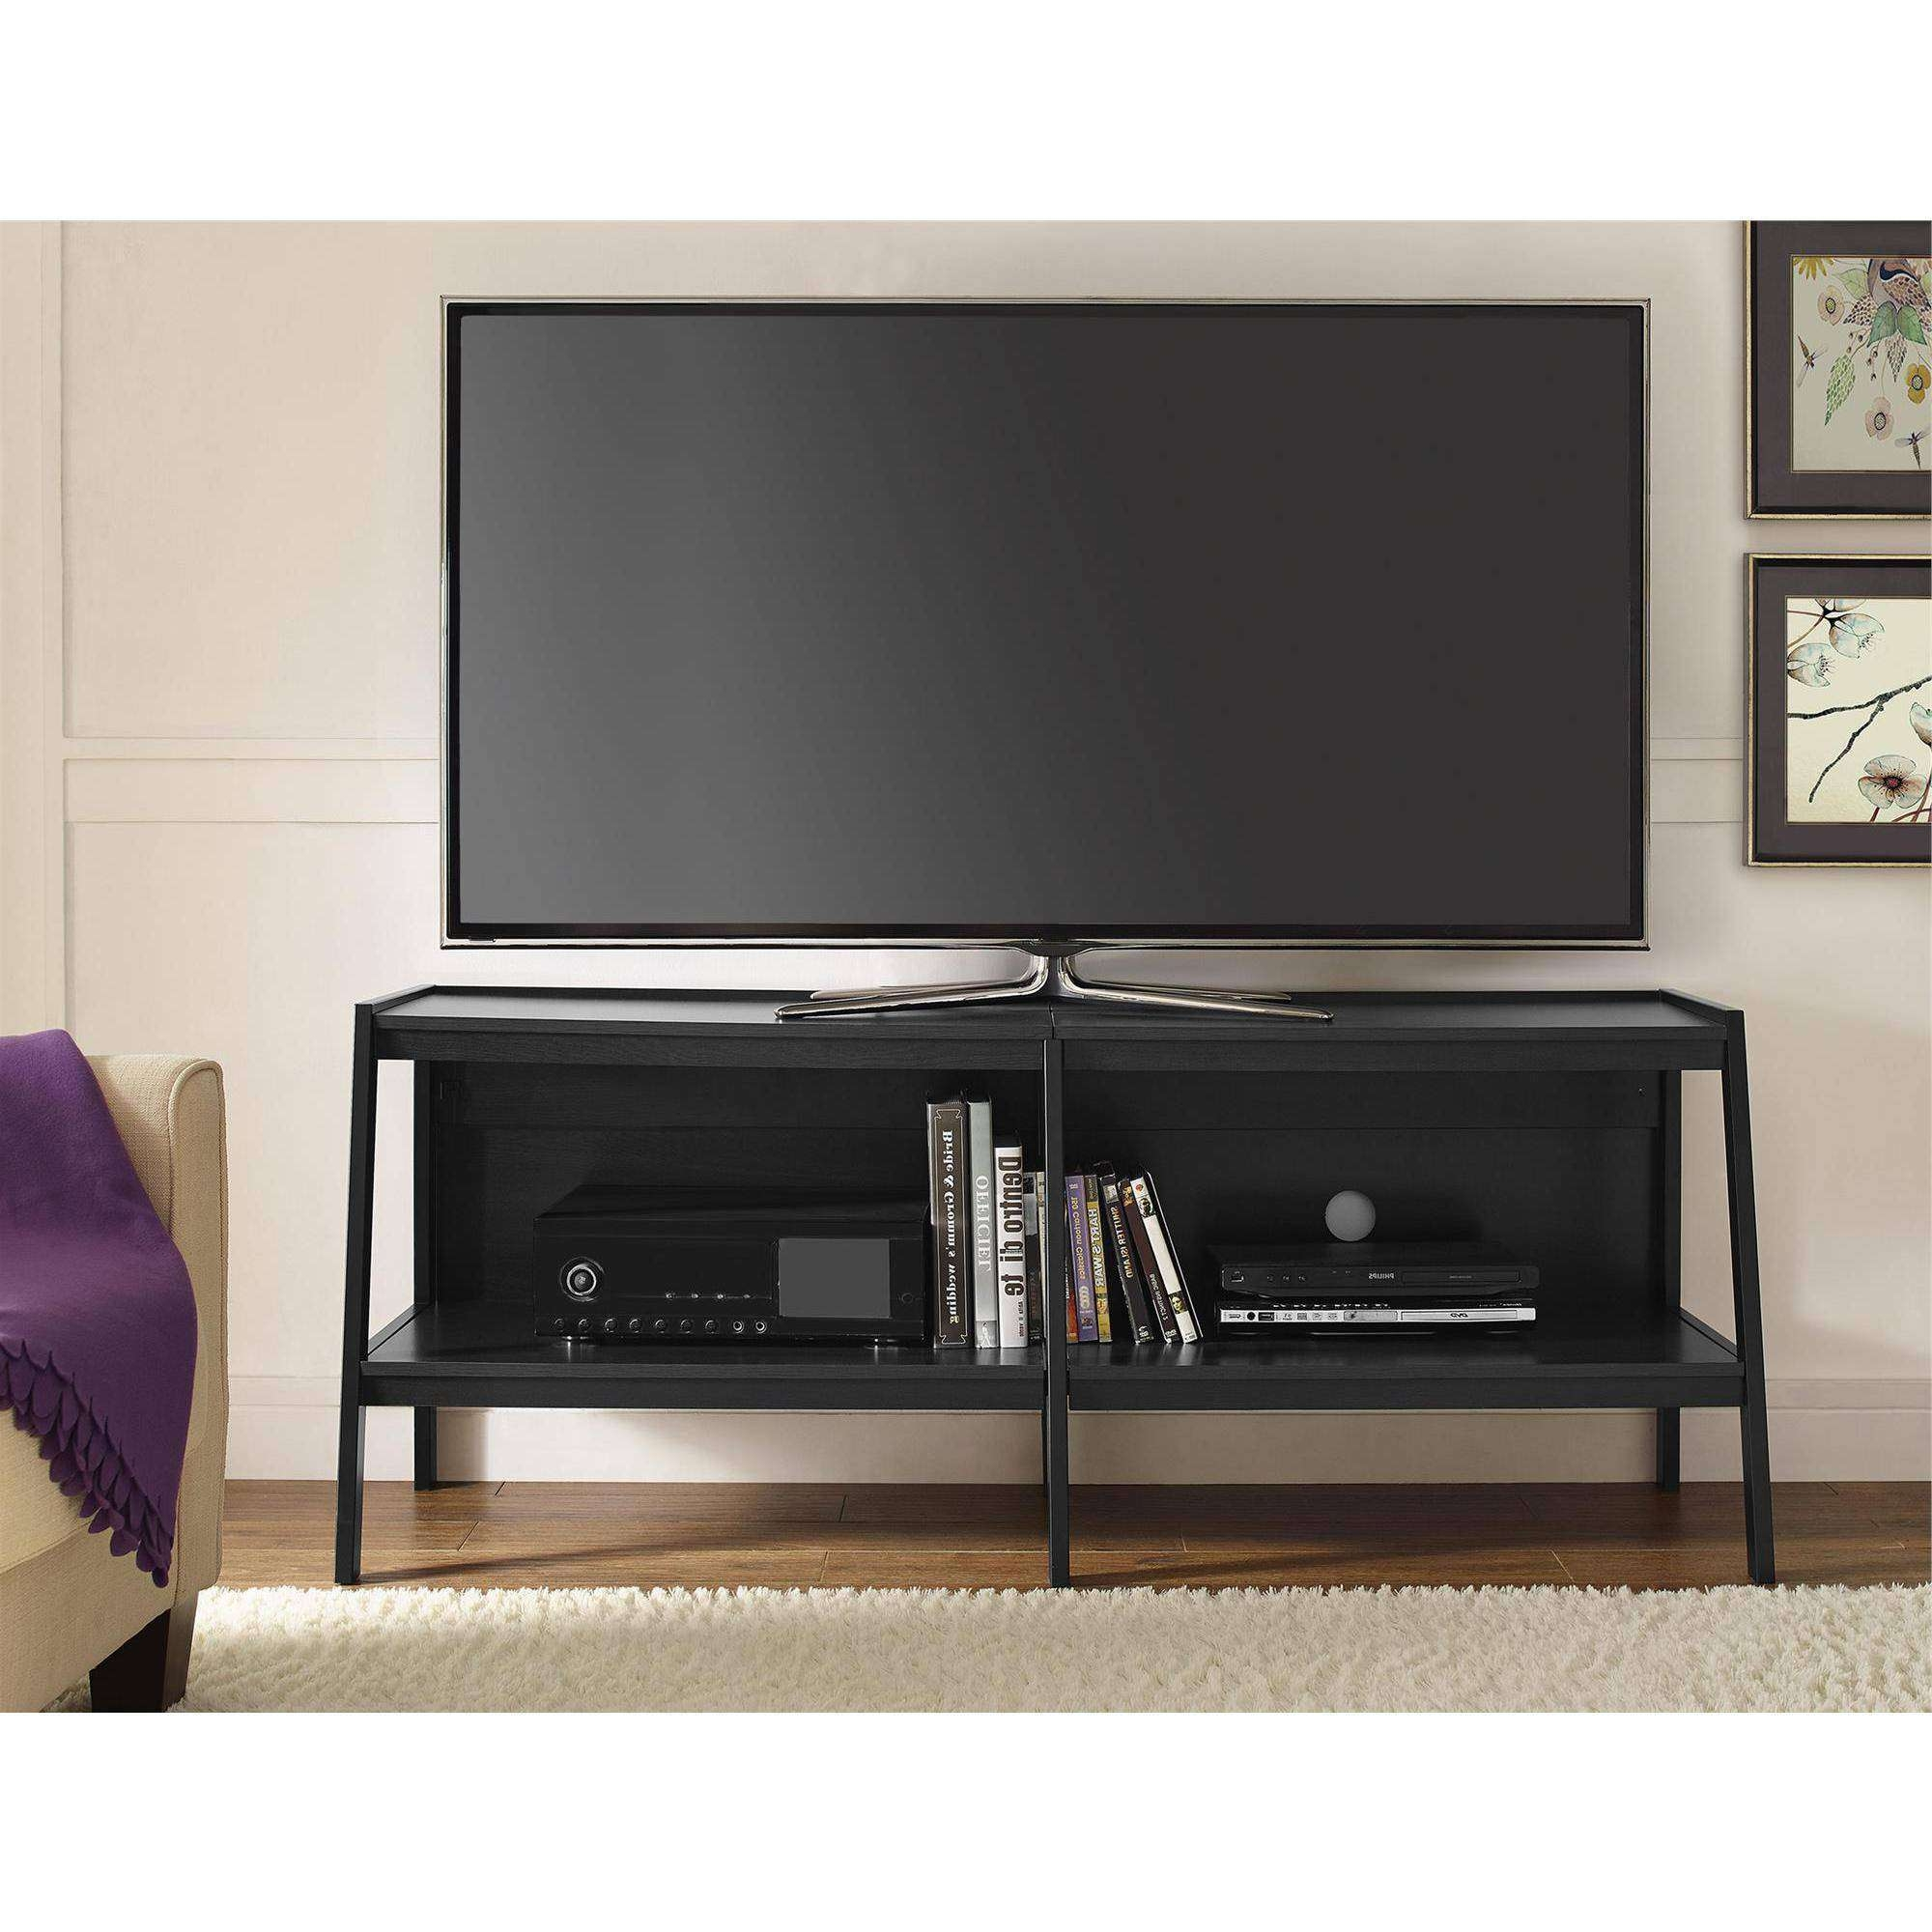 60 Inch Tv Stands For Tv Stands 38 Inches Wide (View 1 of 15)